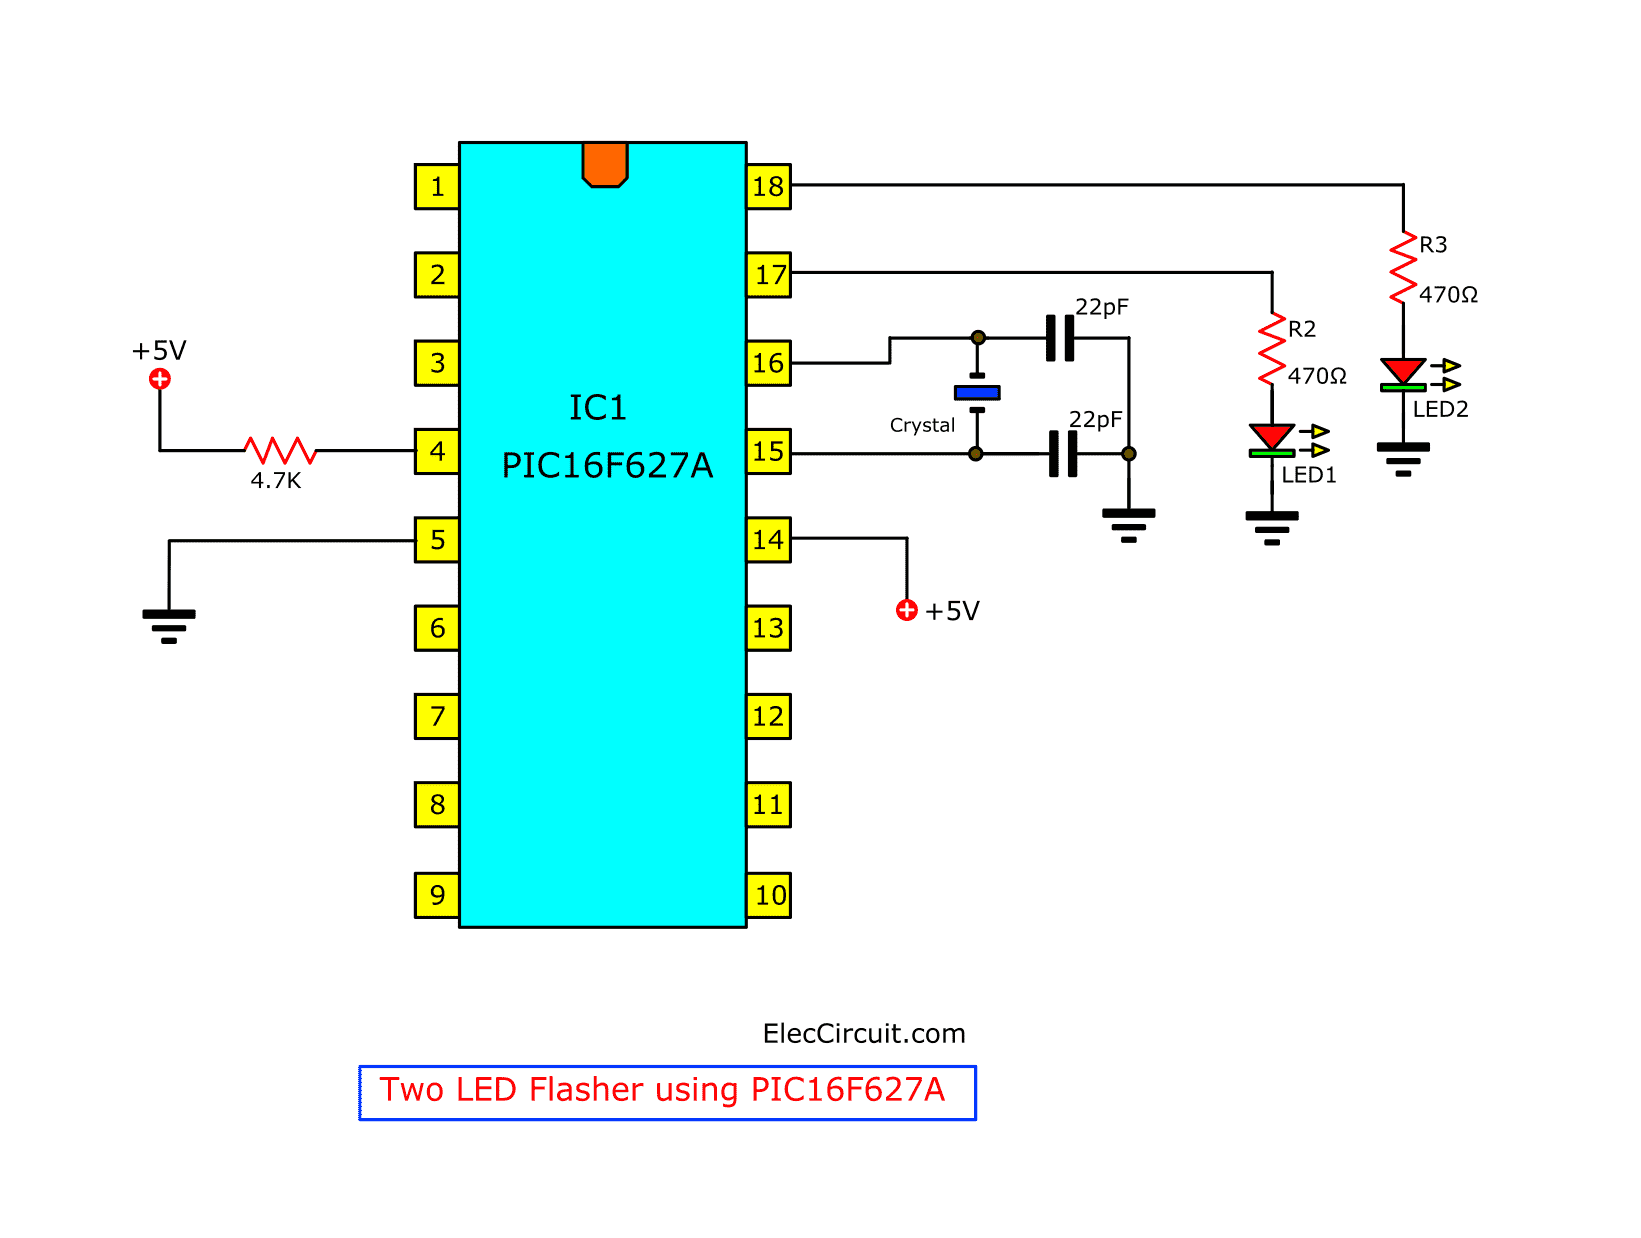 The Code Below Should Work With This Circuit